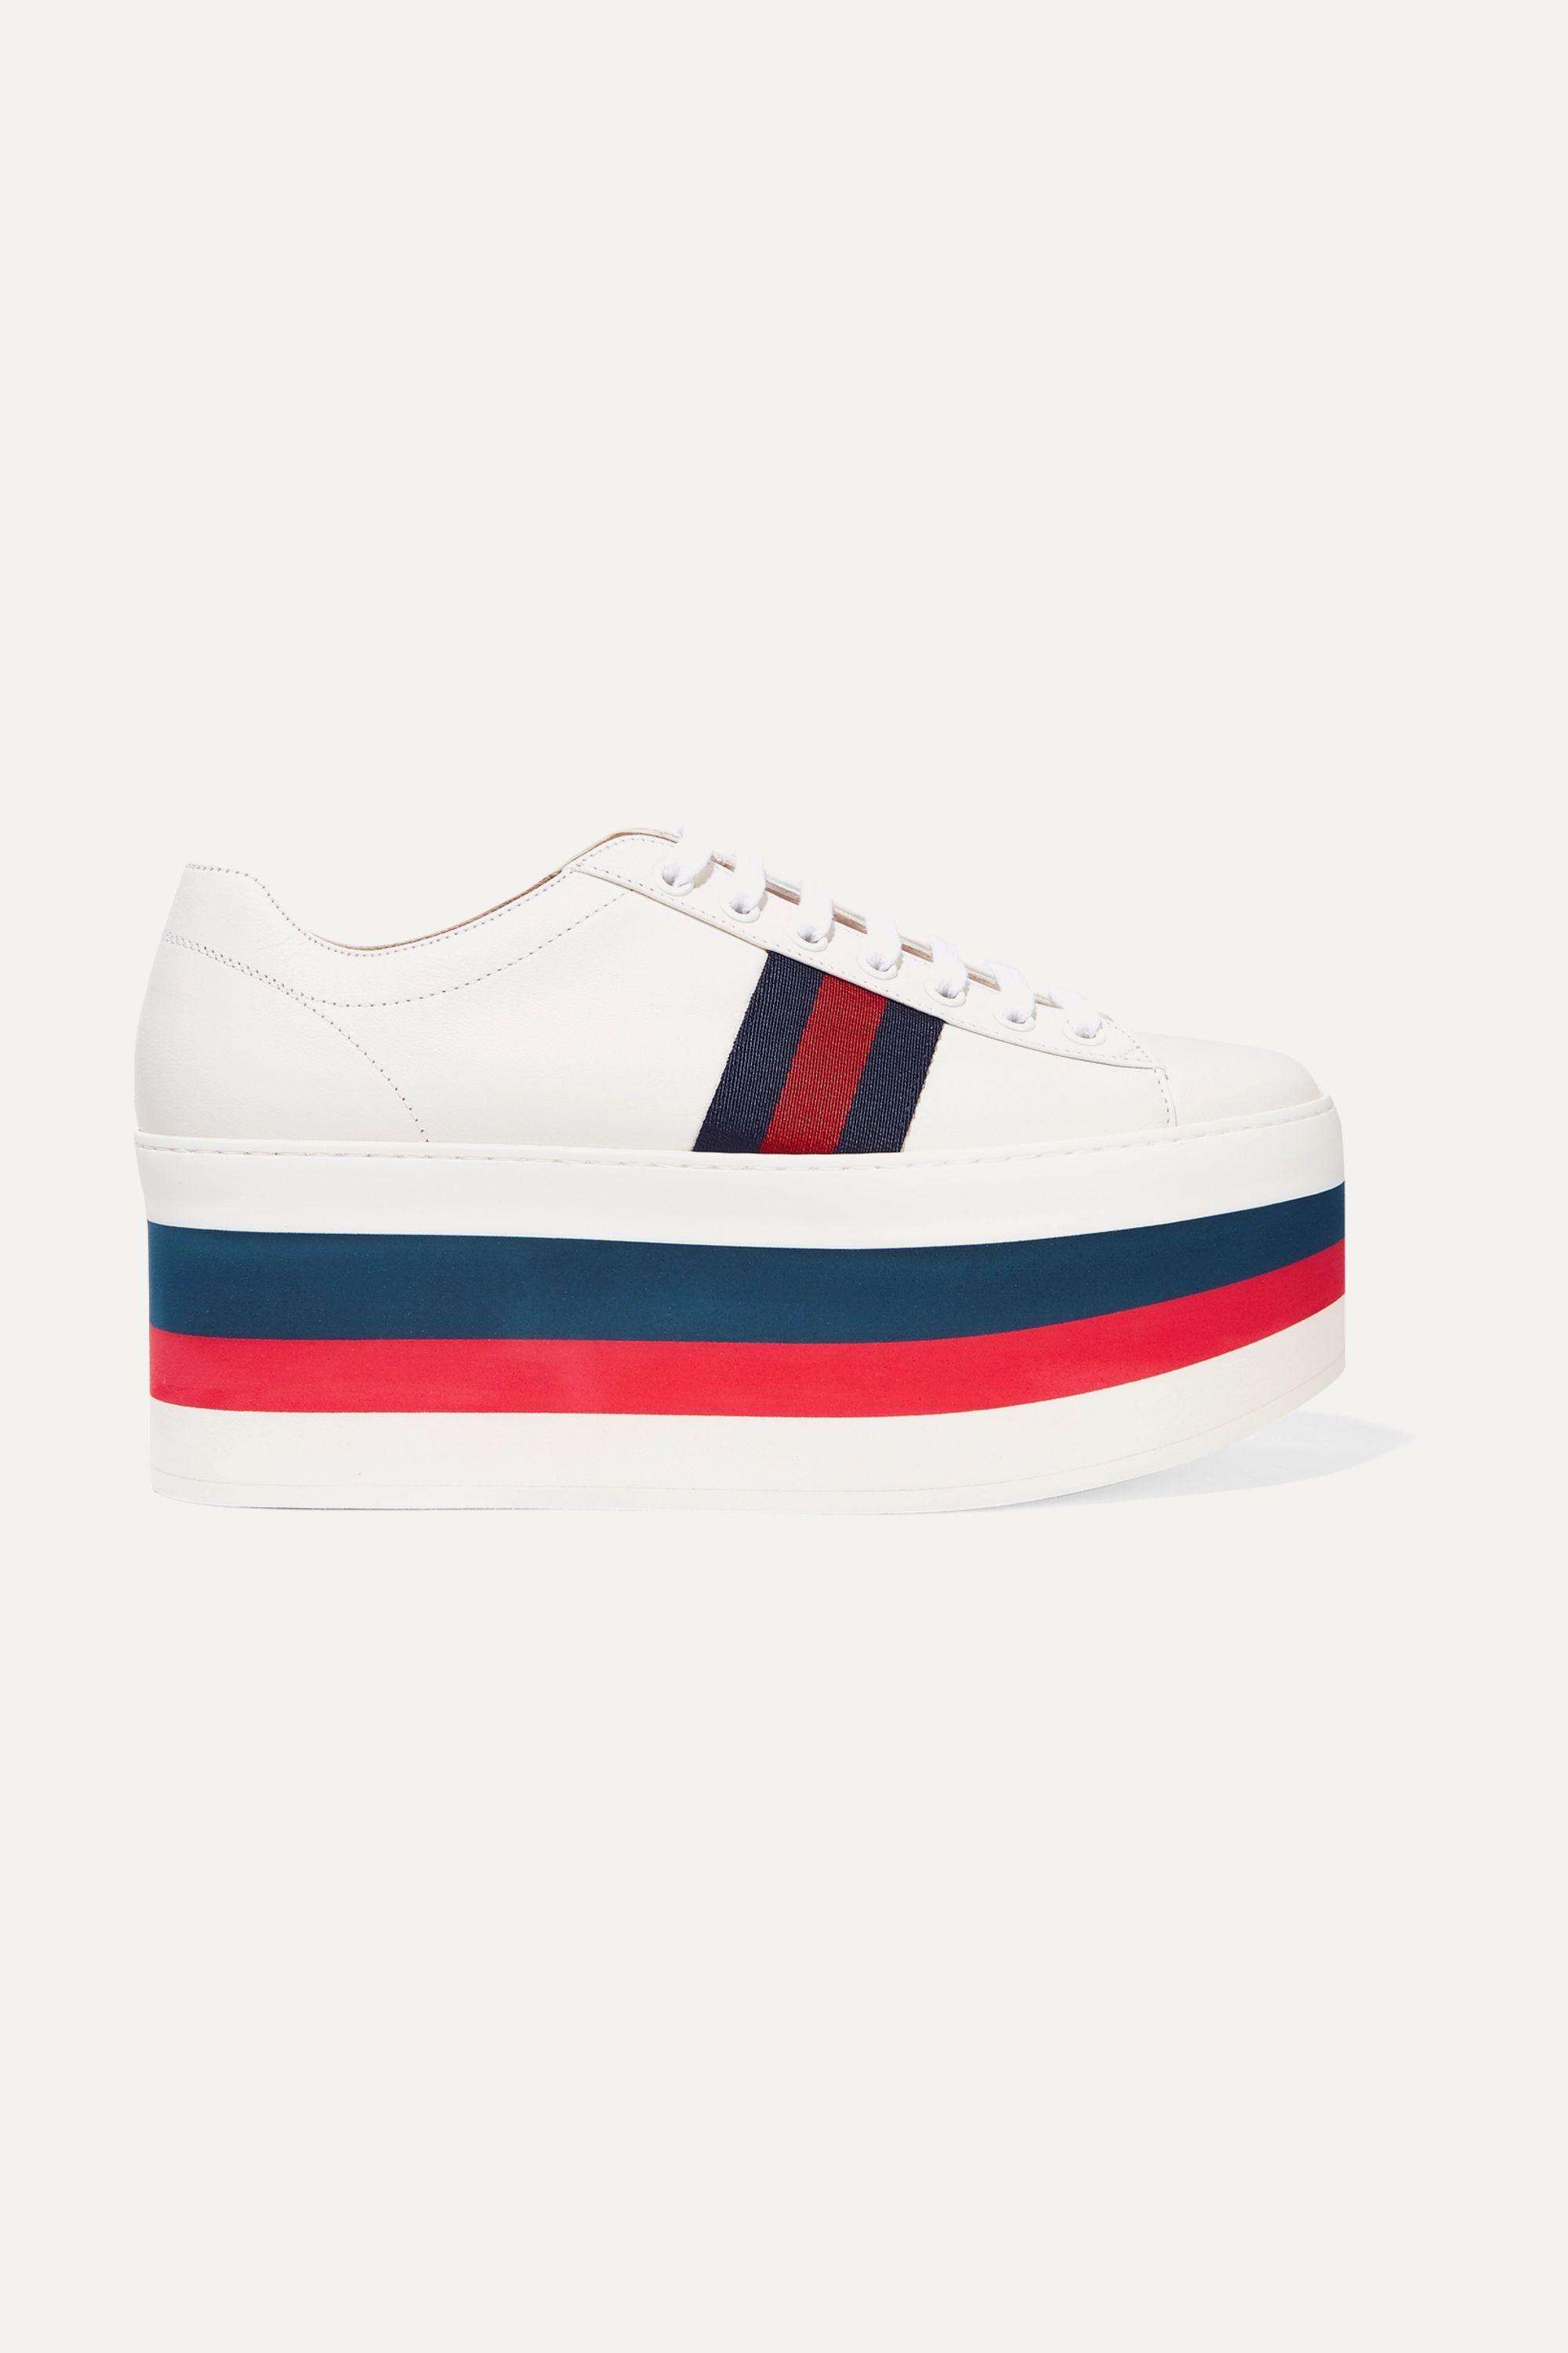 Gucci Leather platform sneakers